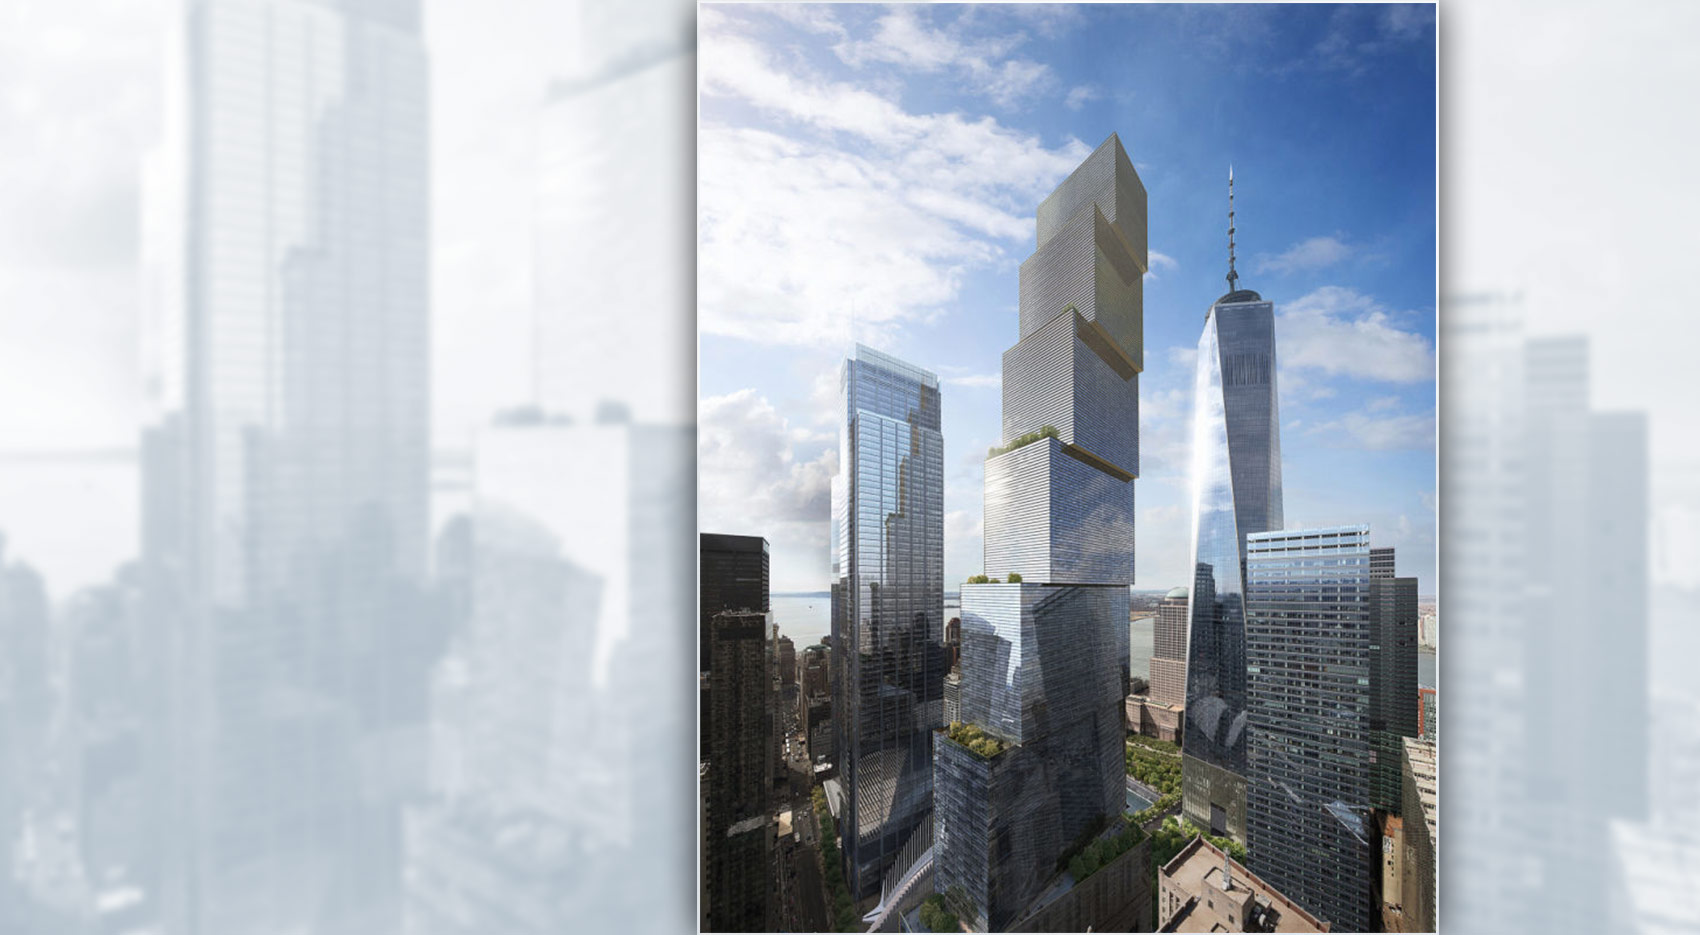 ingels tower by Bjarke Ingels to 2WTC blog Codina Architectural